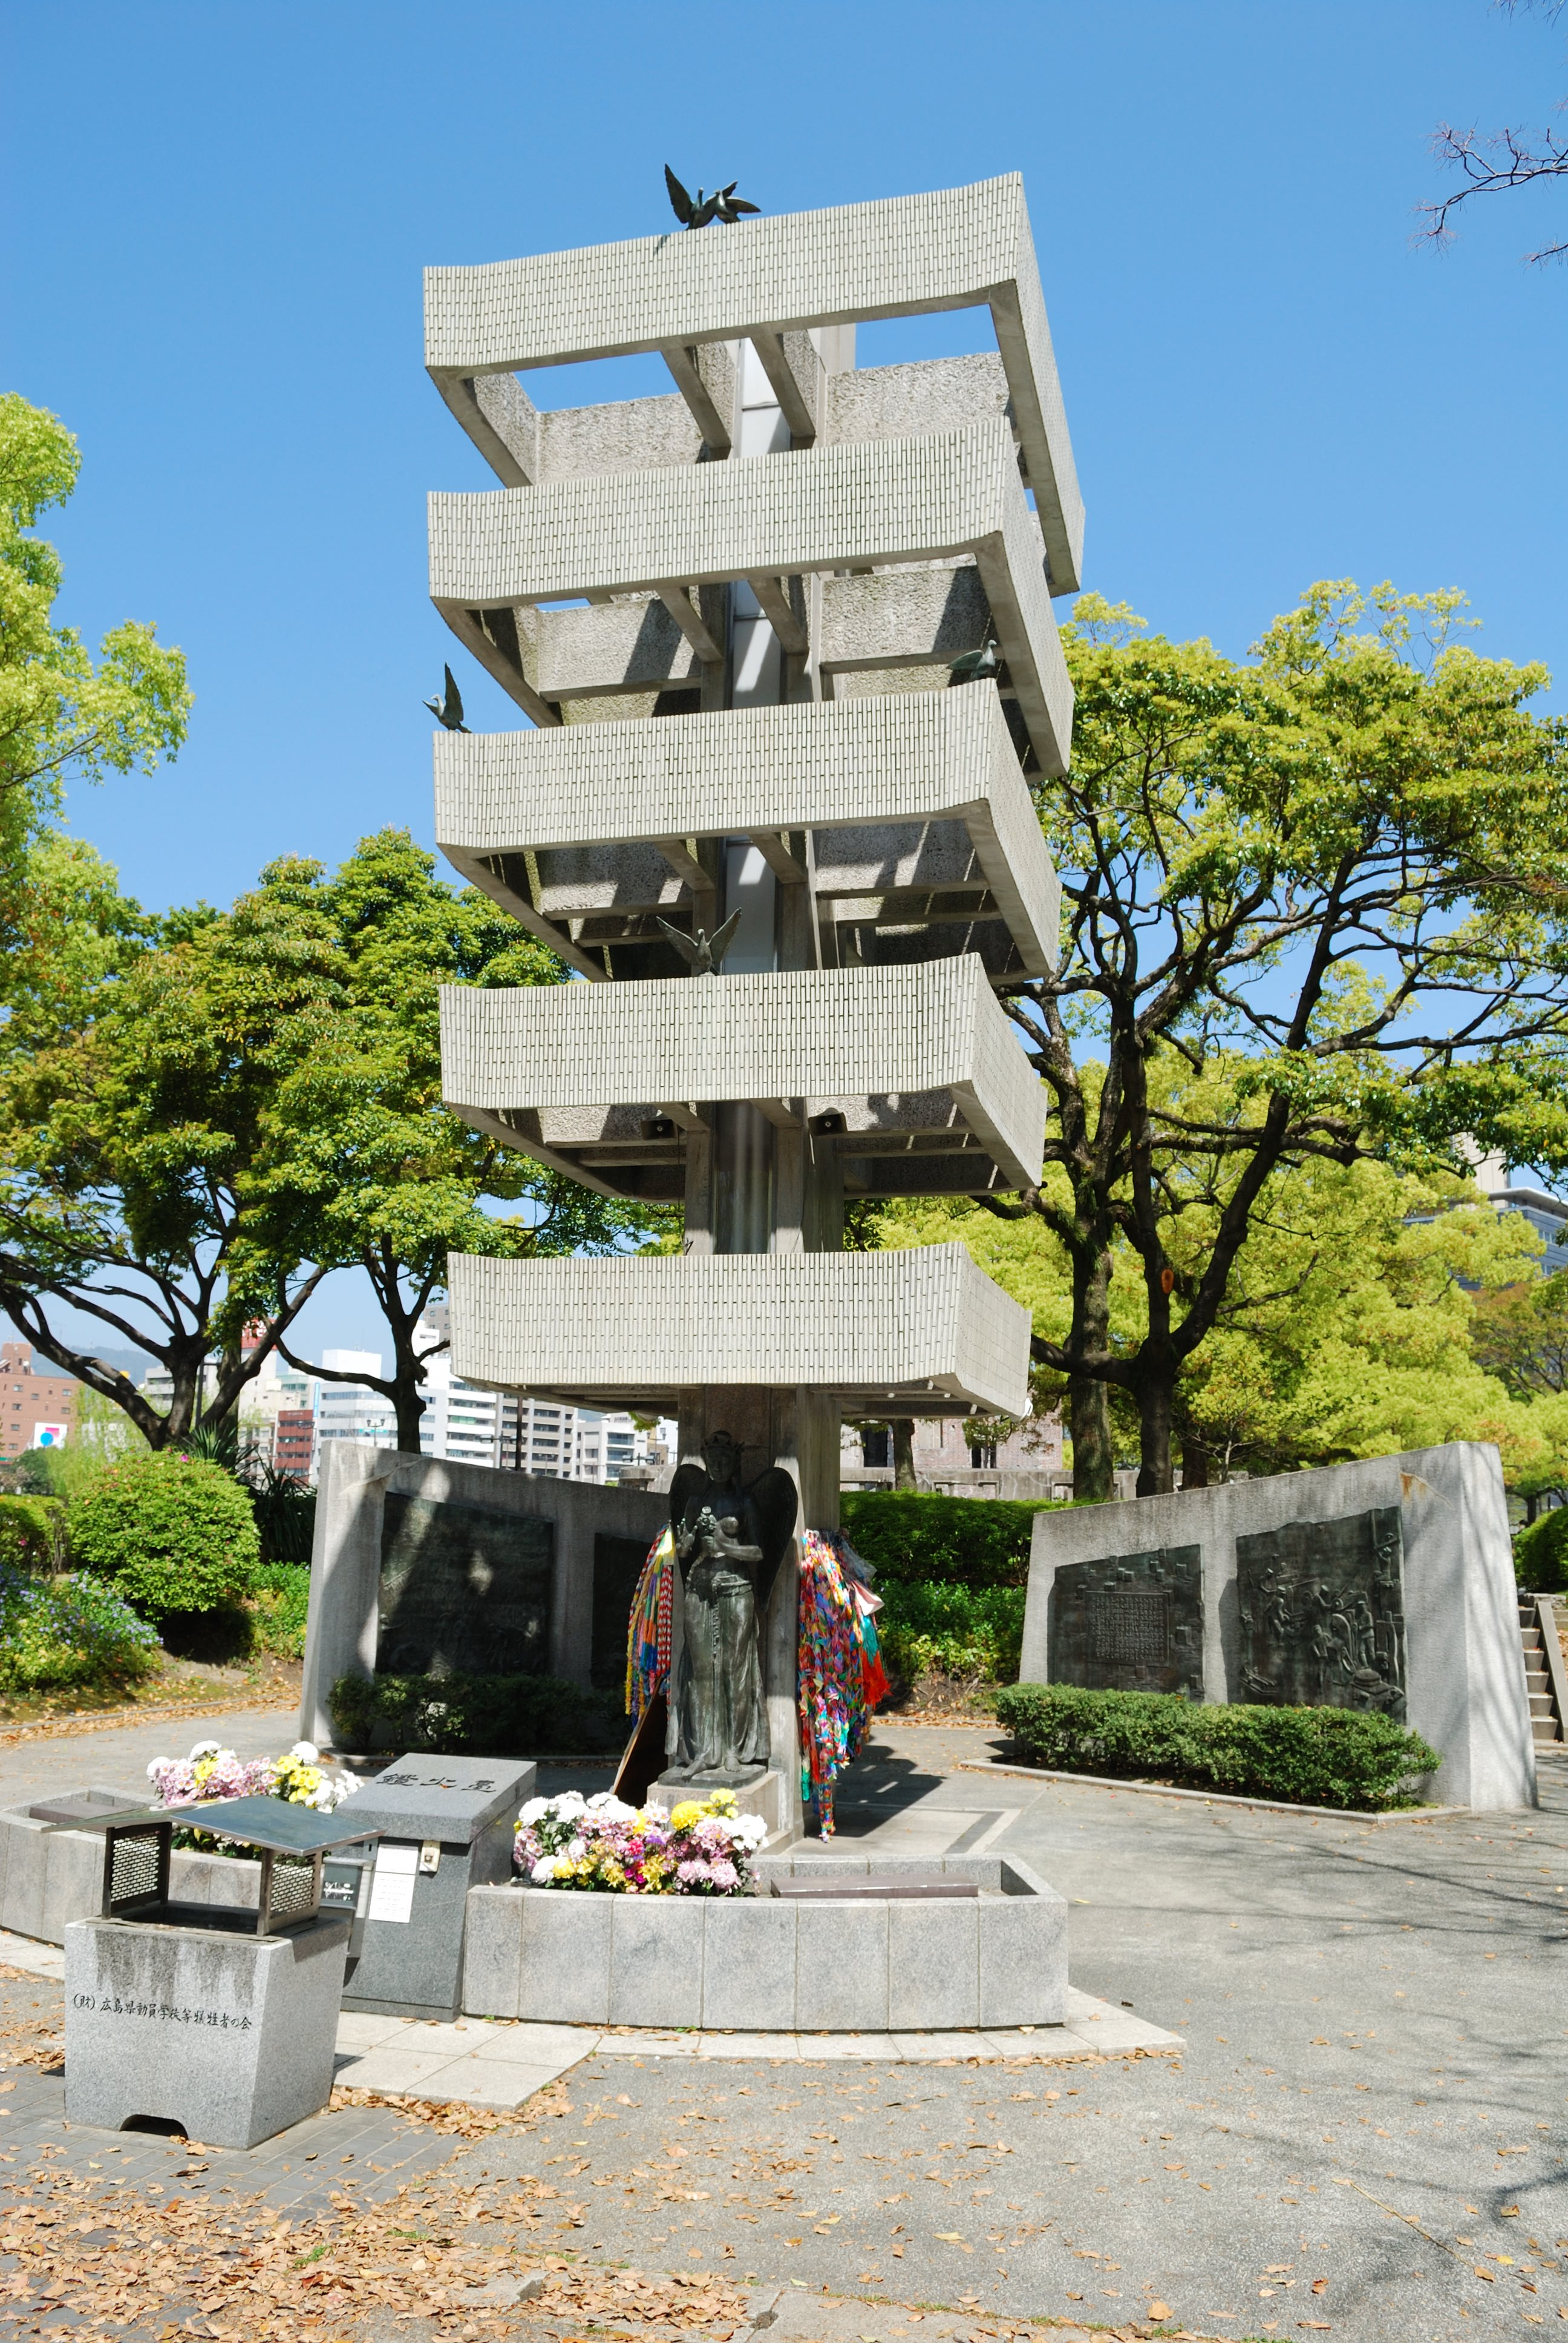 Hiroshima, Japan, Monument to the 30000 students mobilized for the war